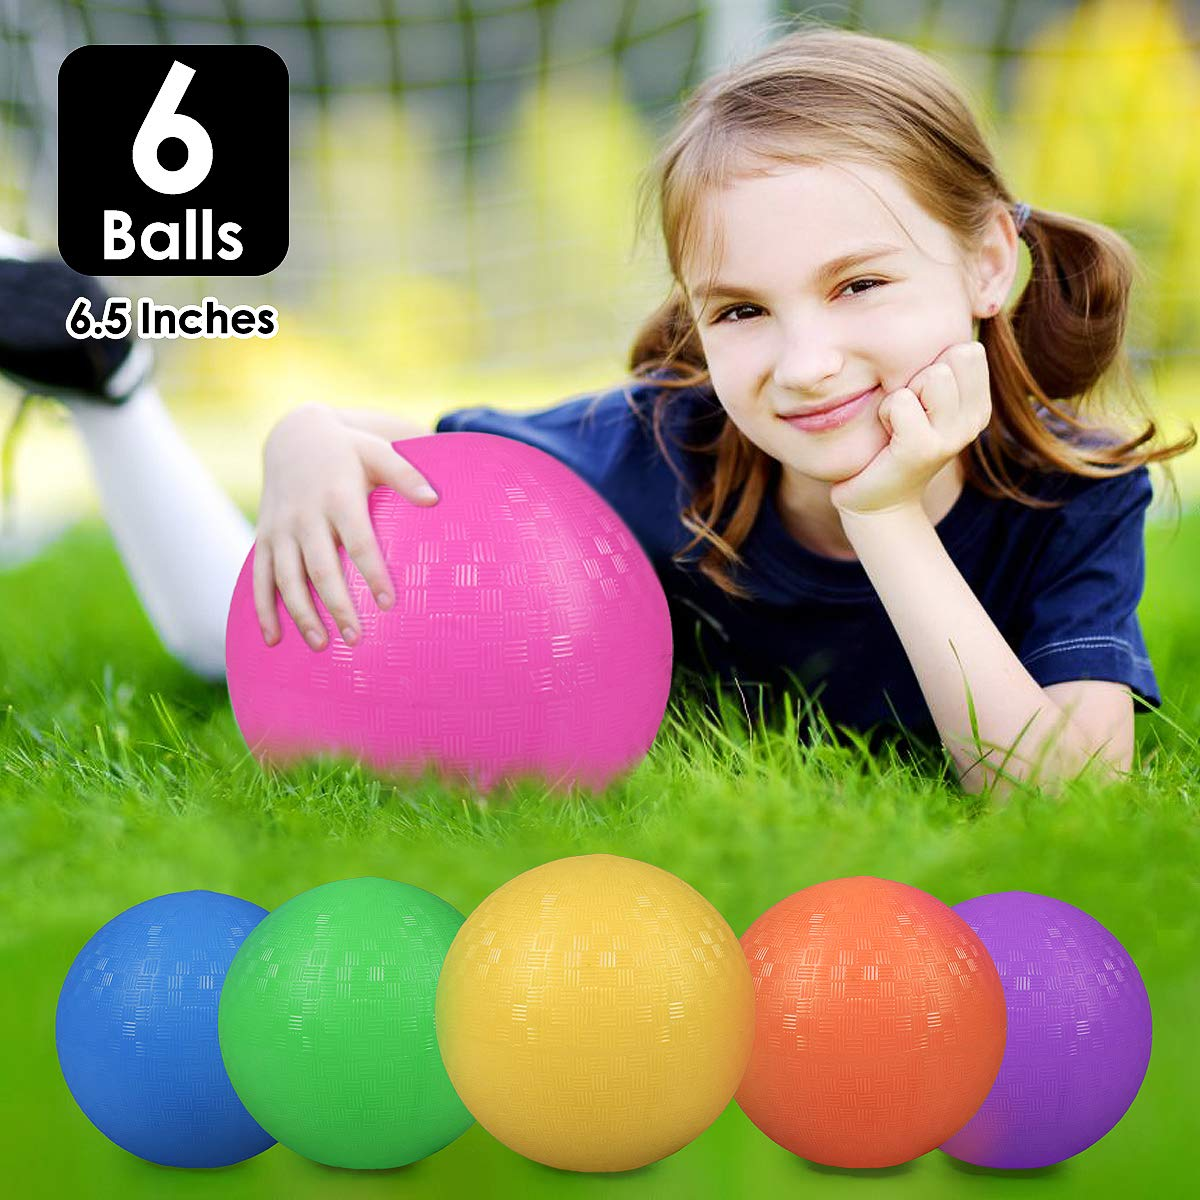 Playground Balls, 6.5'' Inflatable Dodgeball for Kids, 6 Pack - No Sting Balls and Rubber Kickballs with Free Pump - Toys Party Favors - Beach Toys - Party Pack - Schoolyard Games by E-BigSales